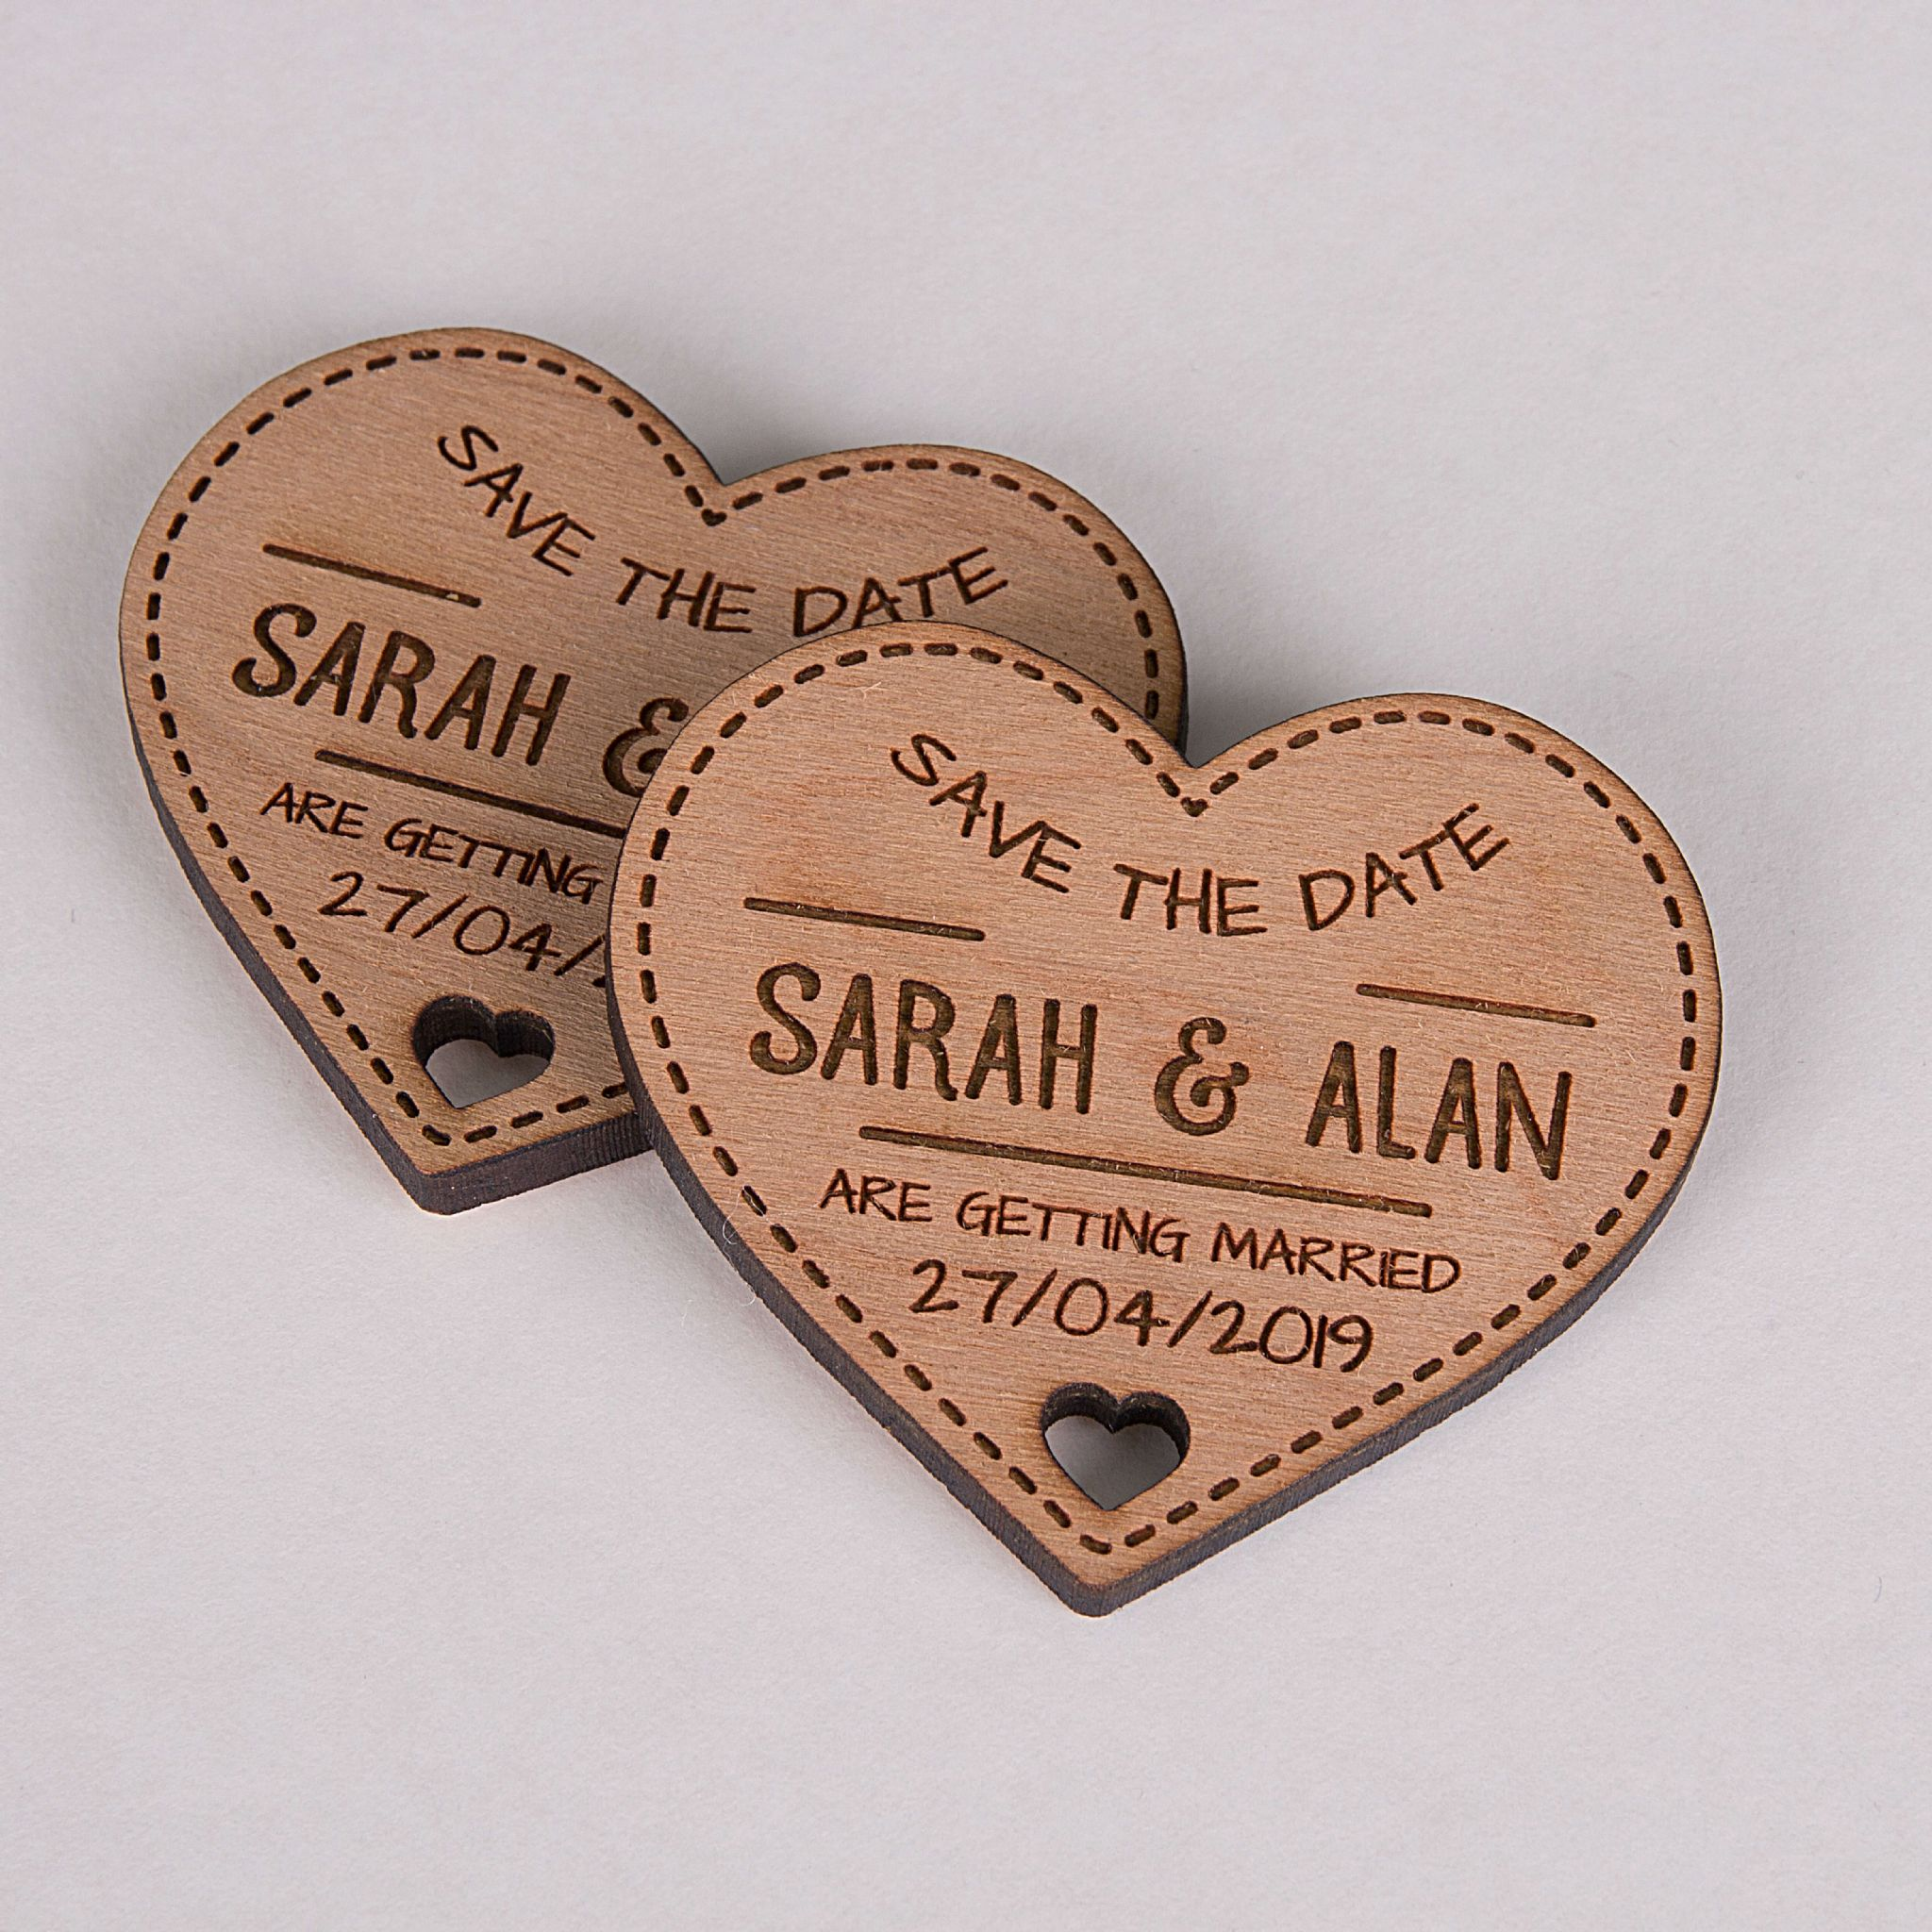 Little Gifts With Love - Personalised Engraved Rustic Cherry Wooden Heart Save The Date Fridge Magnets Invites